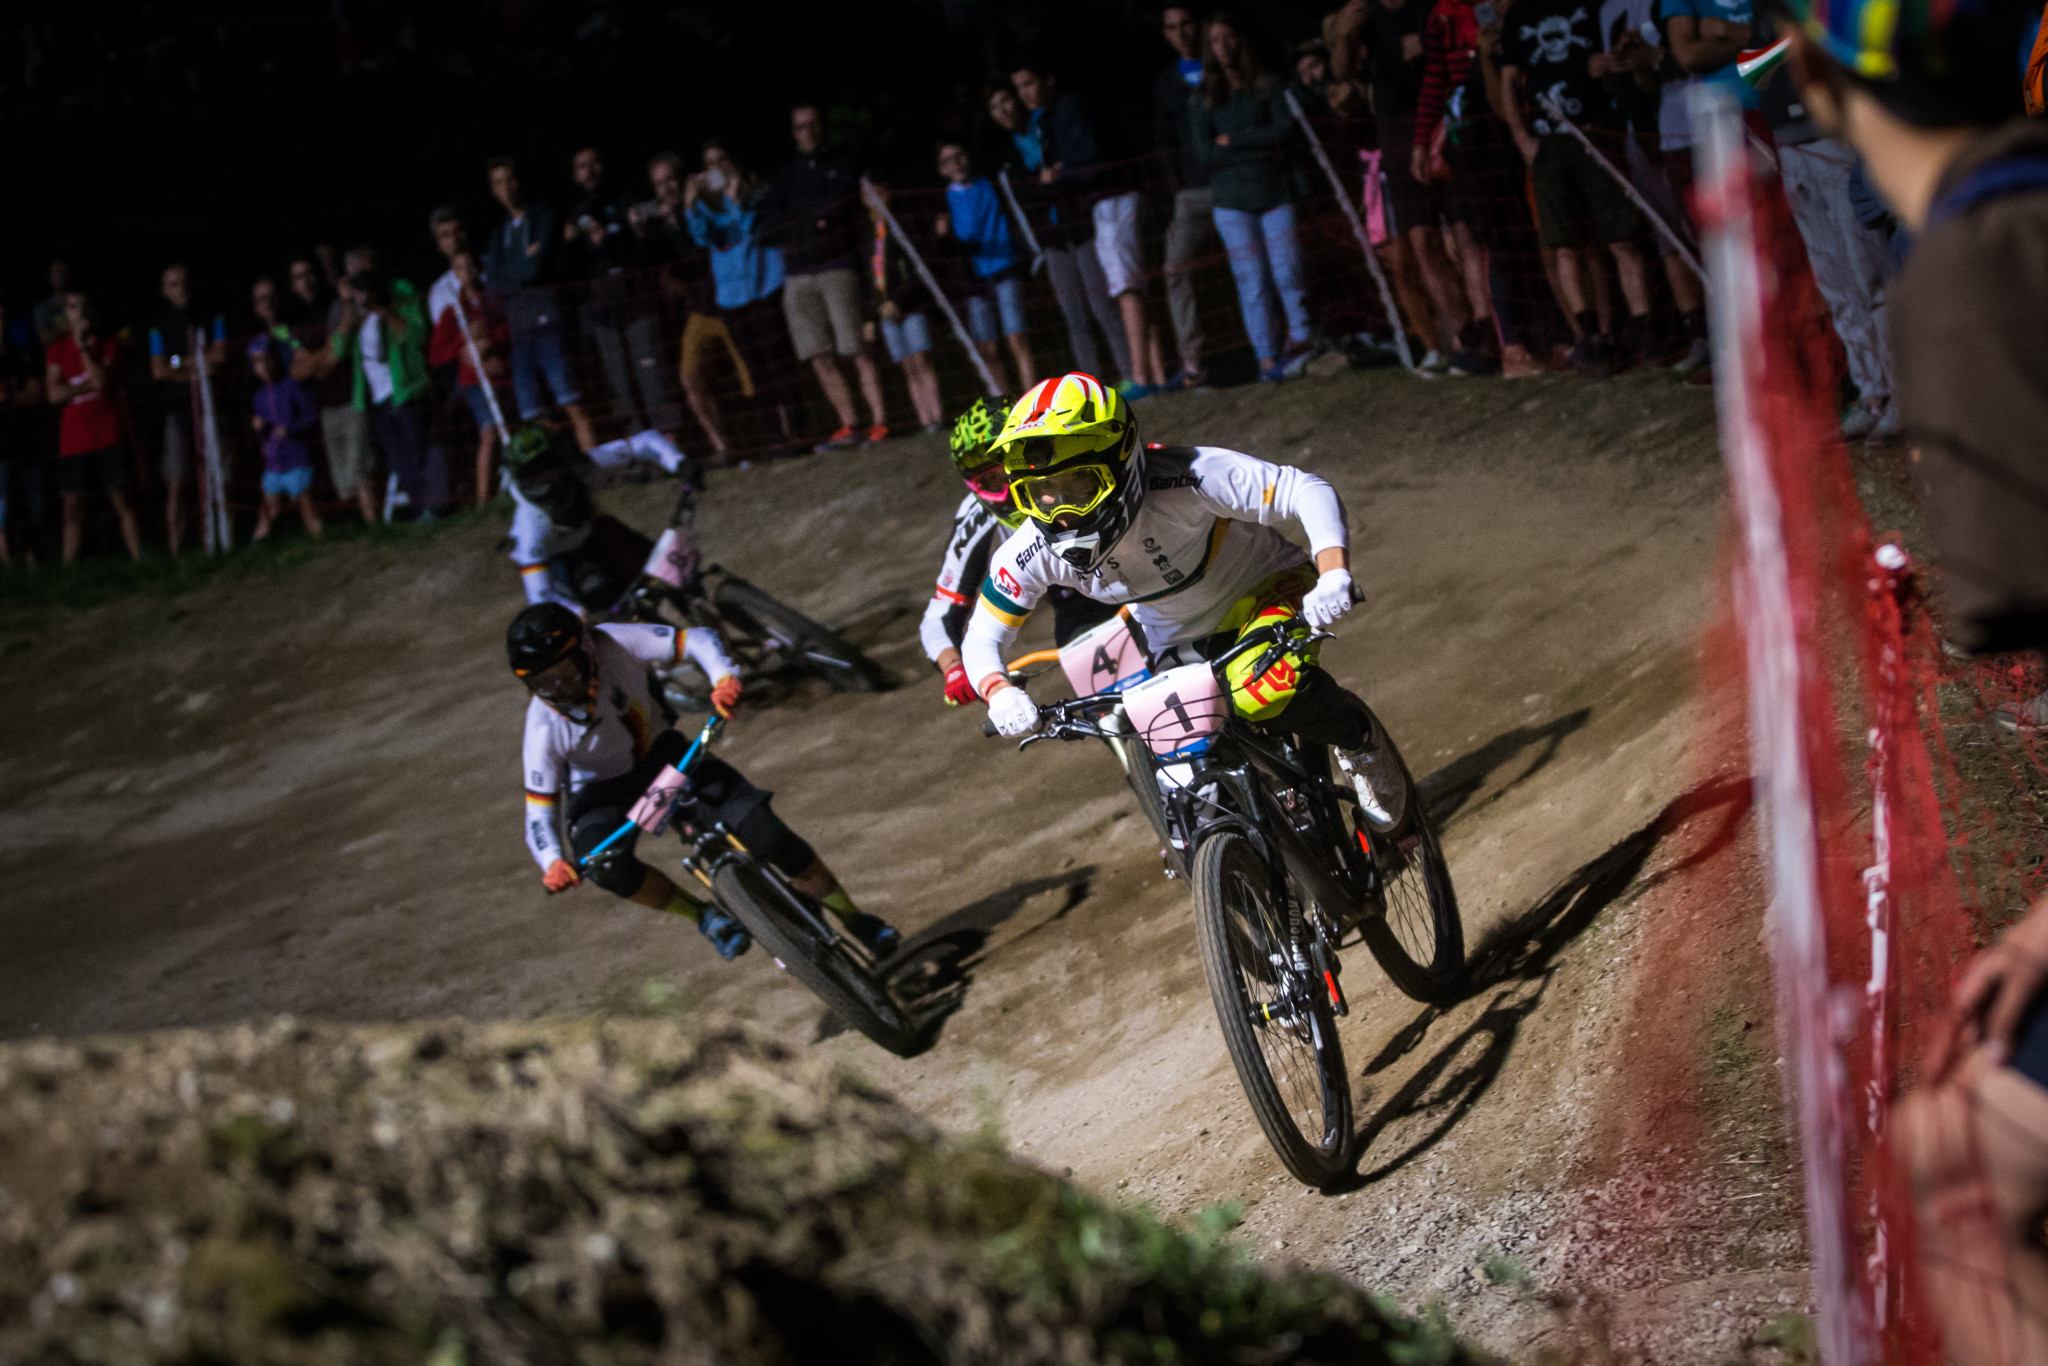 Romana Labounková and Quentin Derbier are set to defend their titles at the UCI Mountain Bike 4X World Championships that start in Val di Sole in Italy tomorrow ©Getty Images